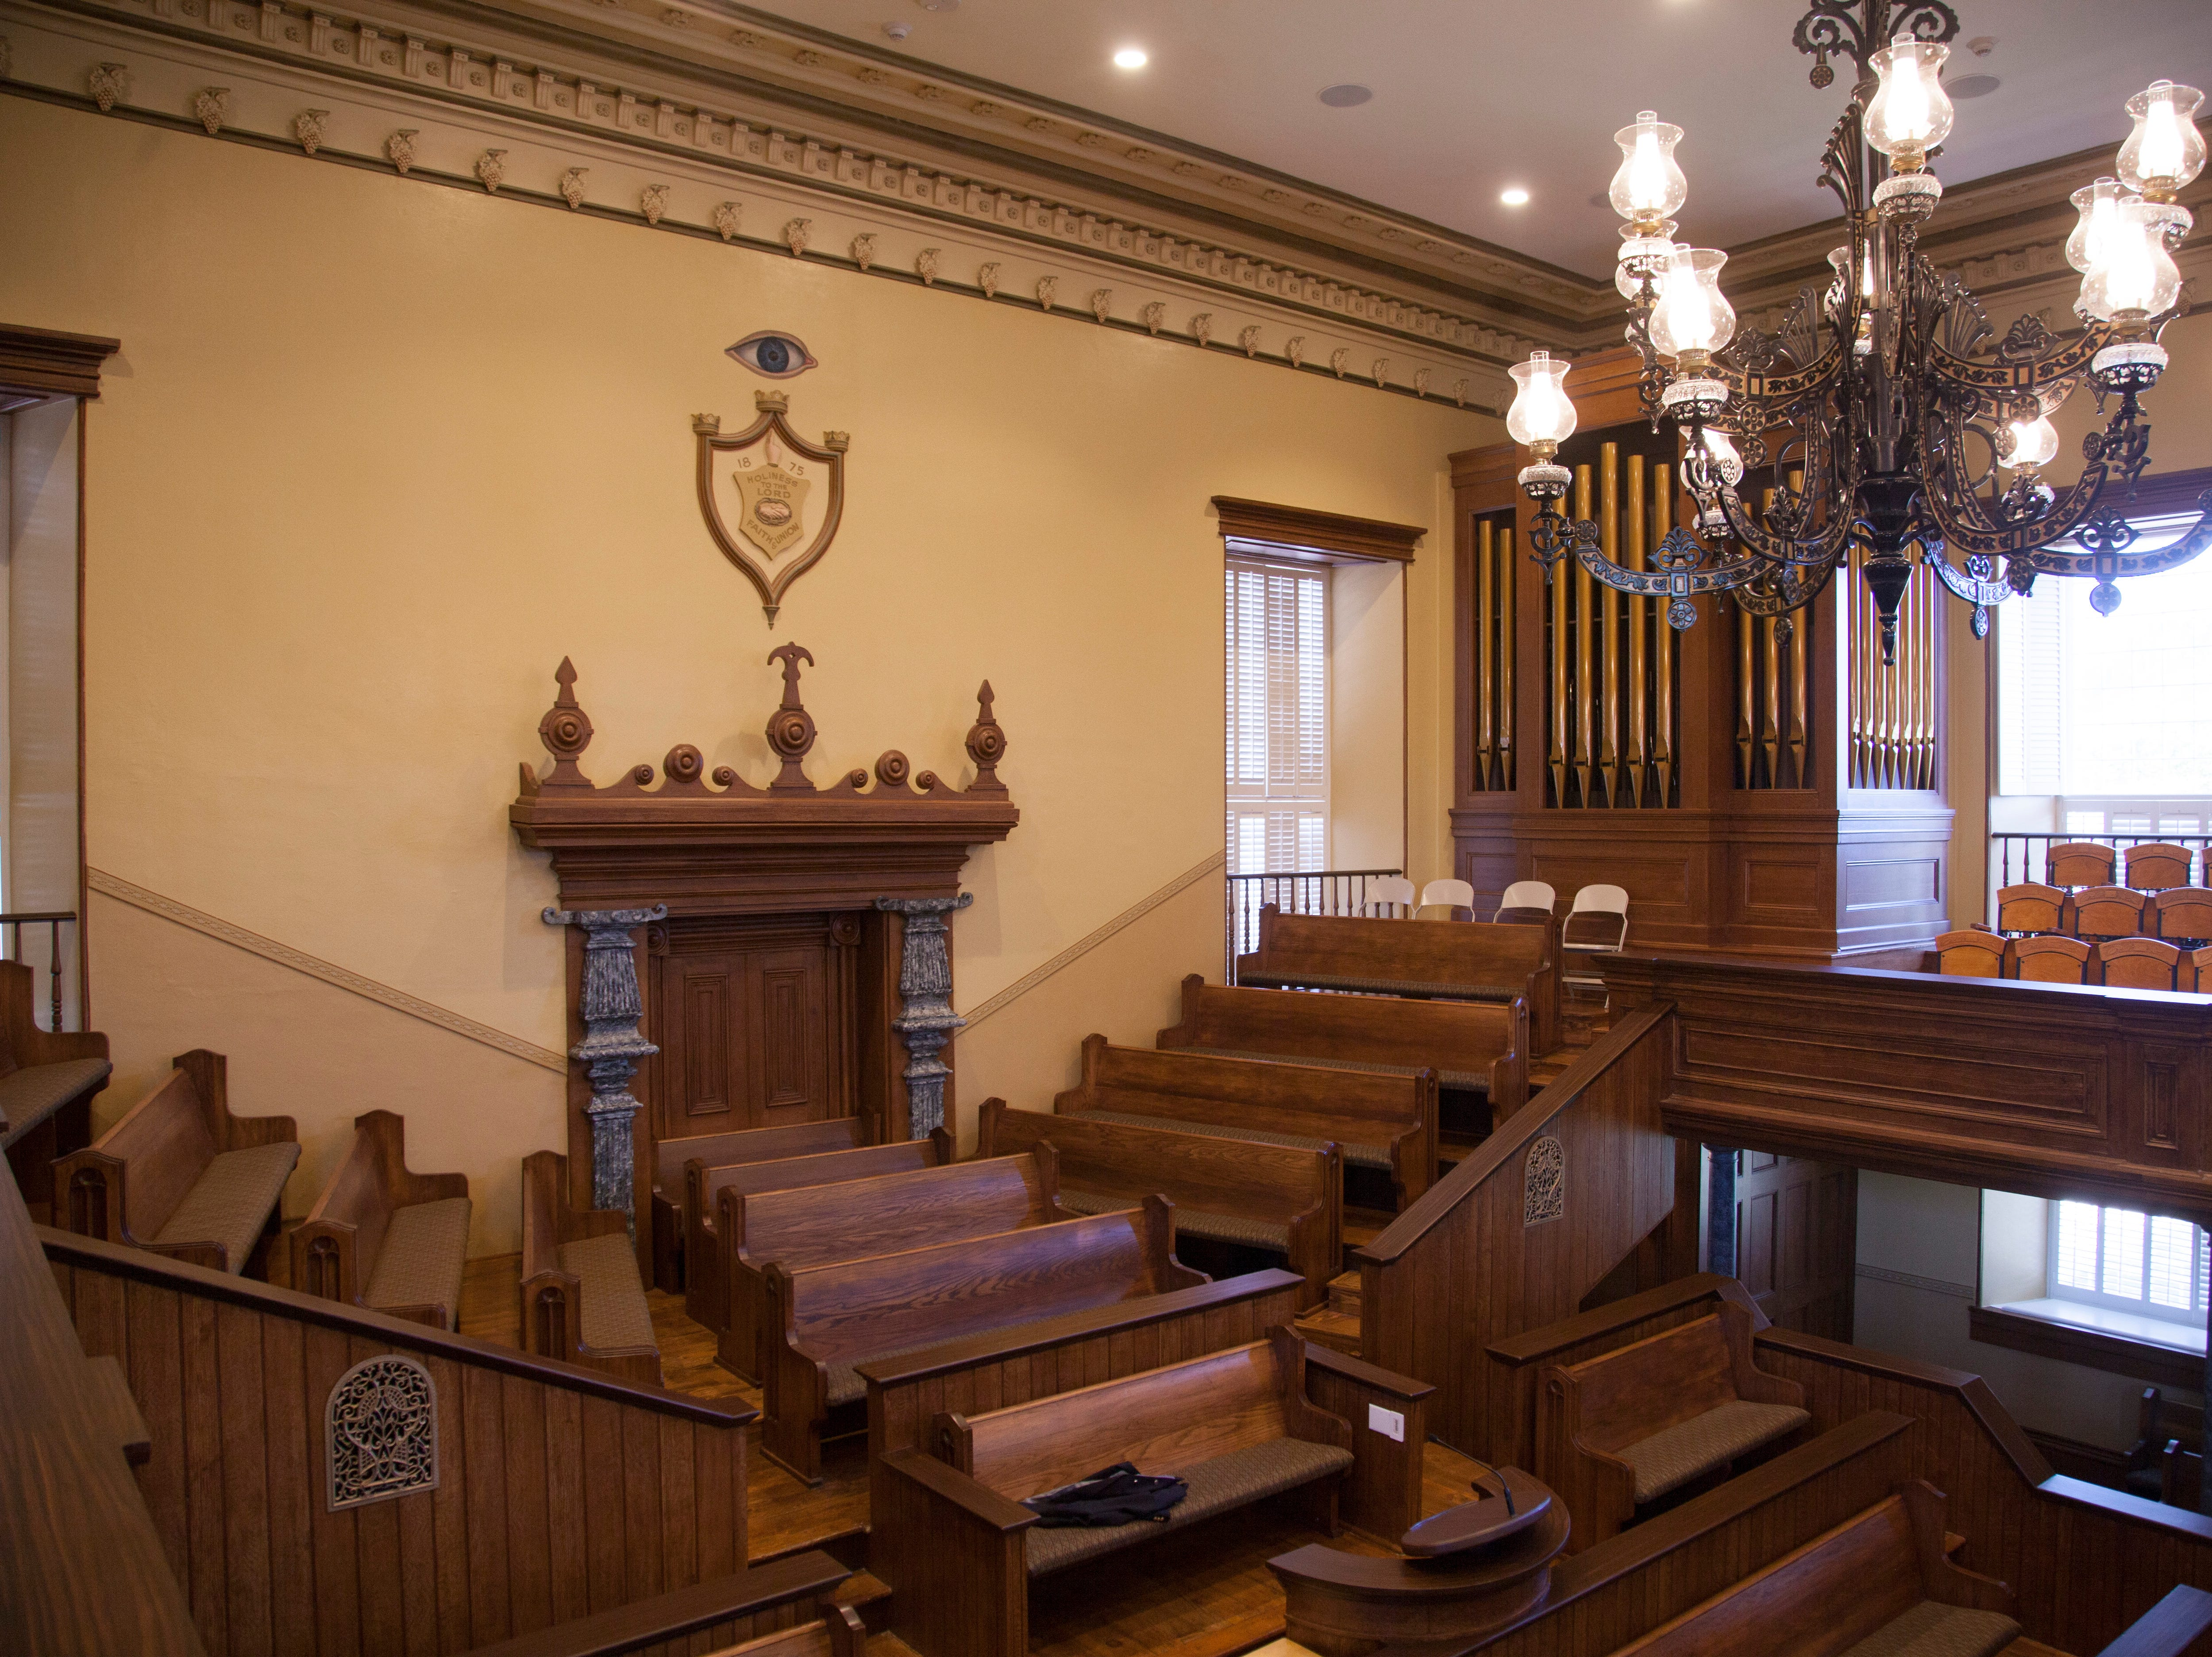 The St. George Tabernacle was opened for tours Monday, July 23, 2018, after two years of renovations to preserve and secure the historic building.